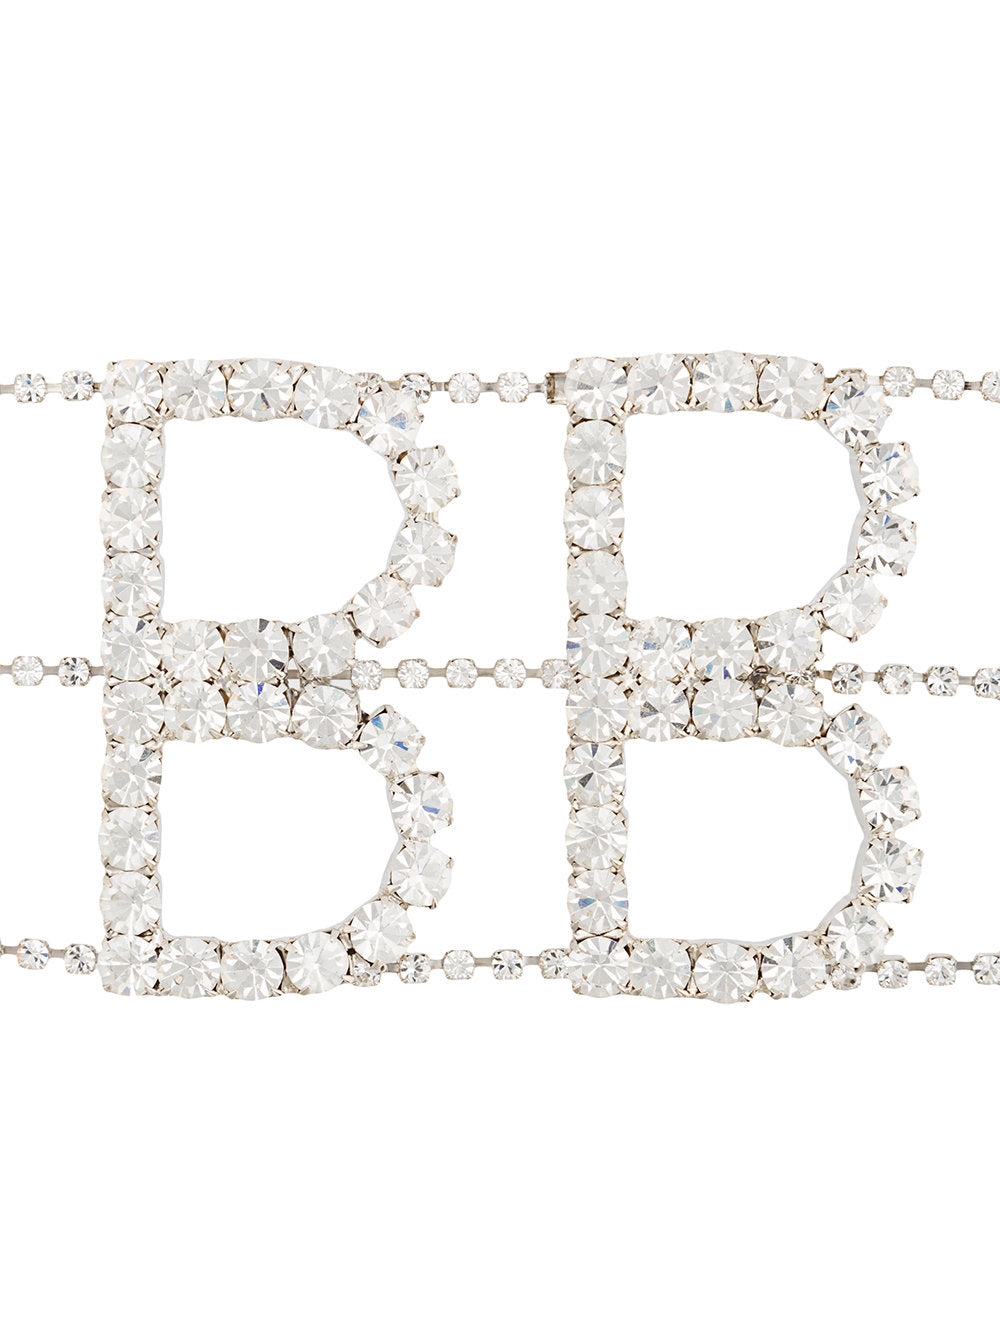 Barbara Bologna Crystal Brave Choker Necklace - 2